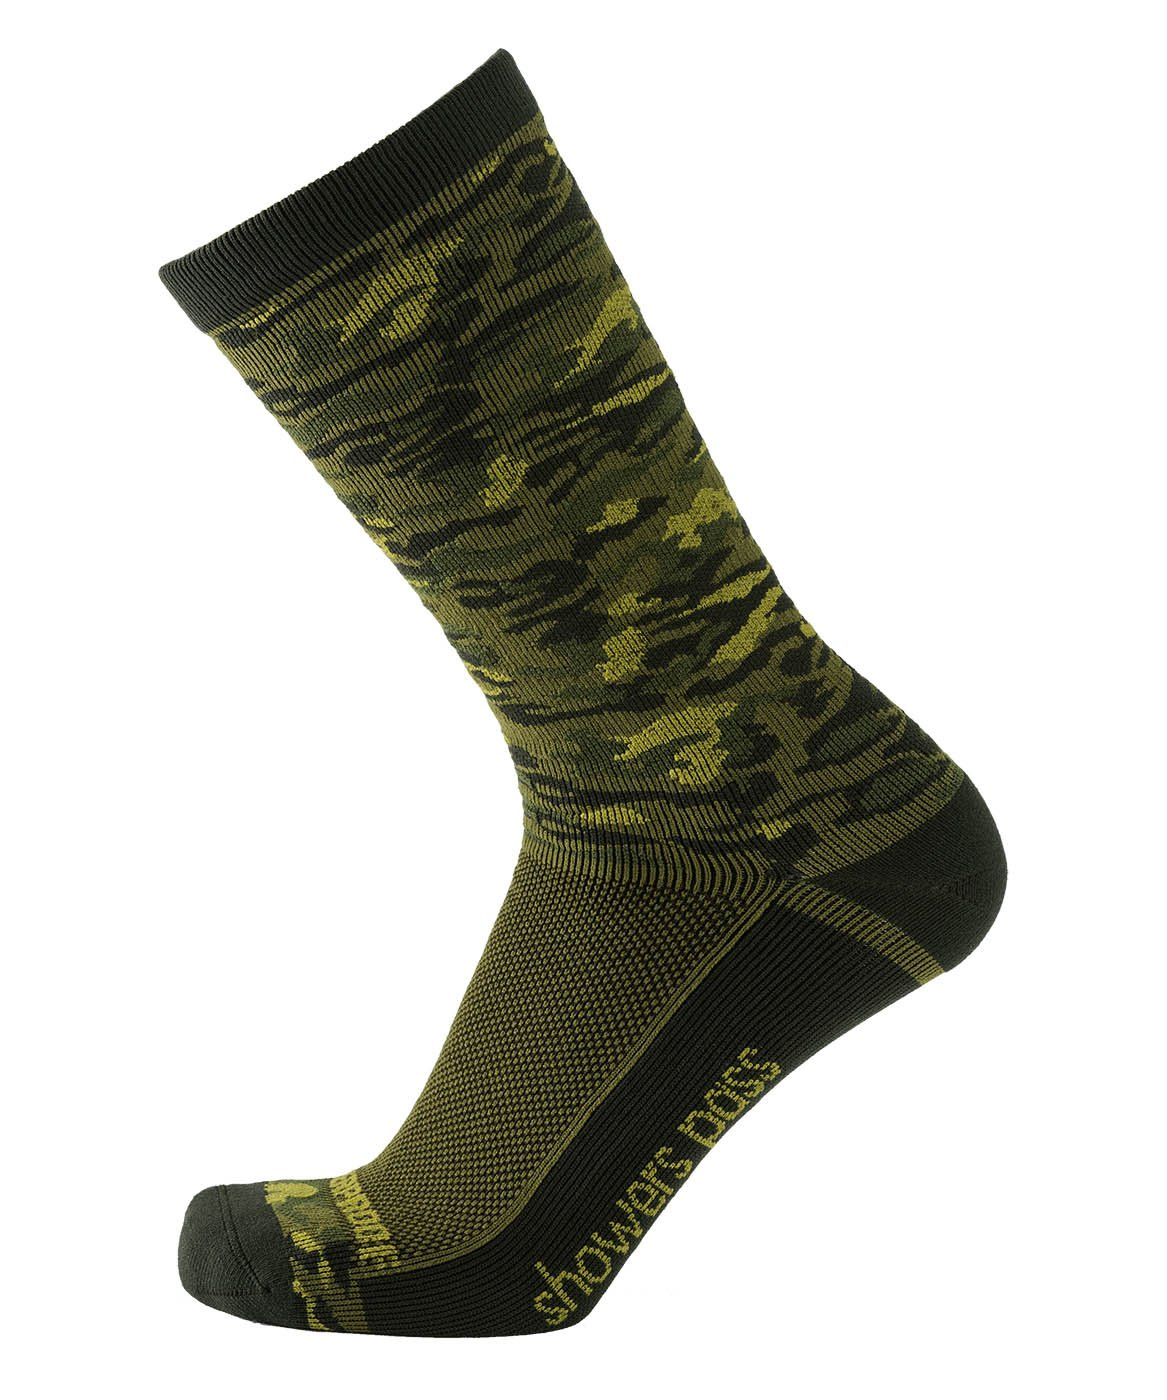 Lightweight Waterproof Socks-Crosspoint Camo